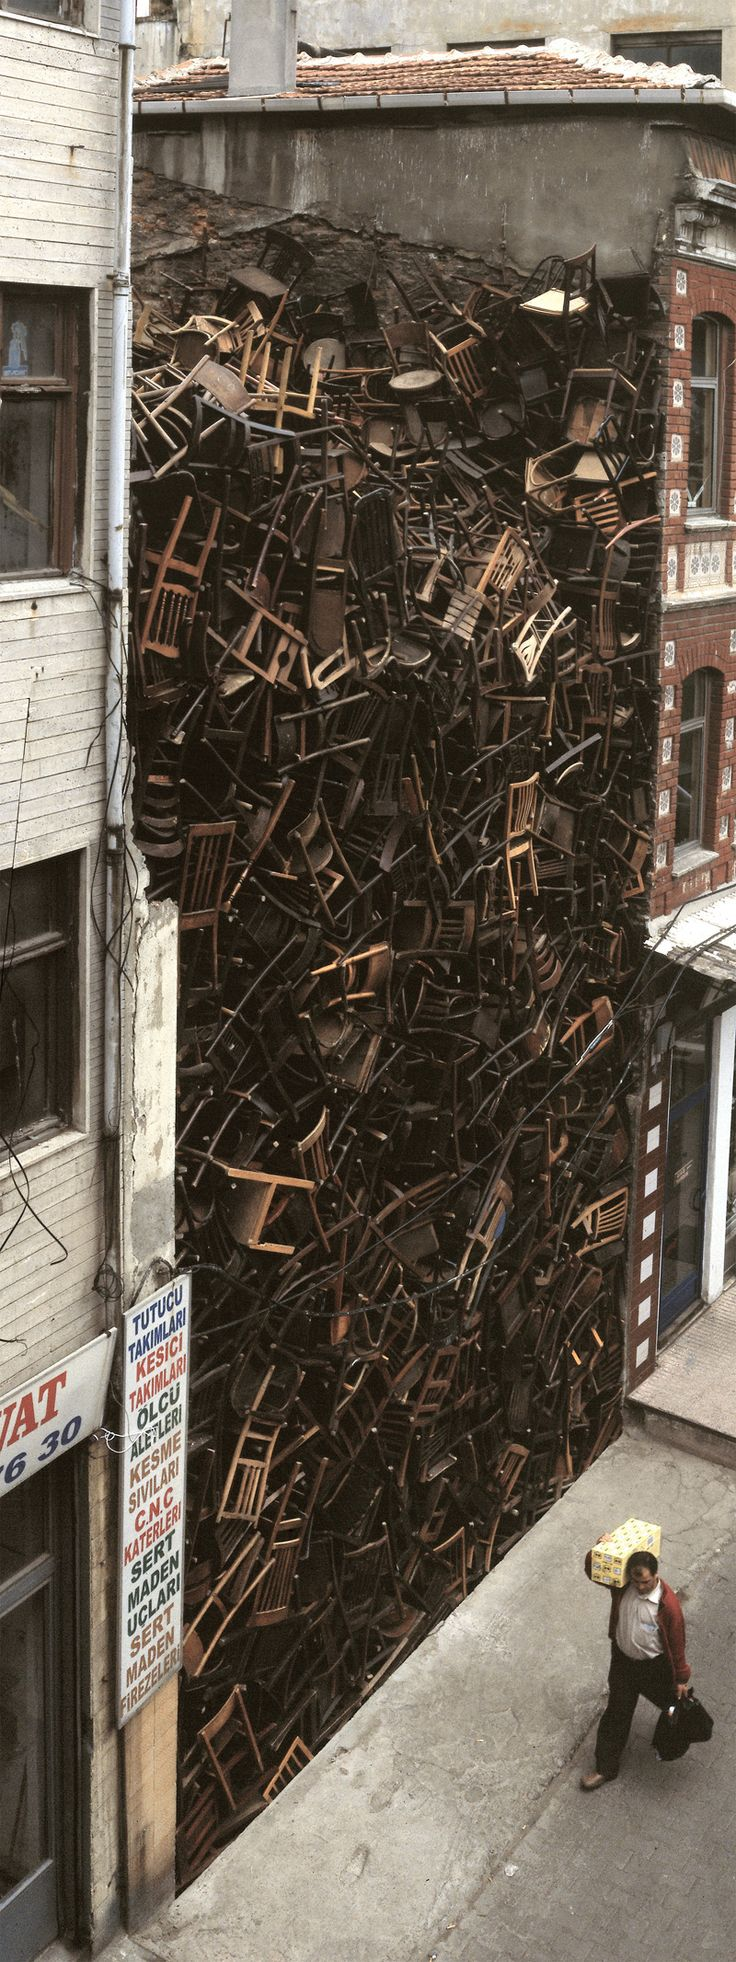 Doris Salcedo - Memories of Seminar!